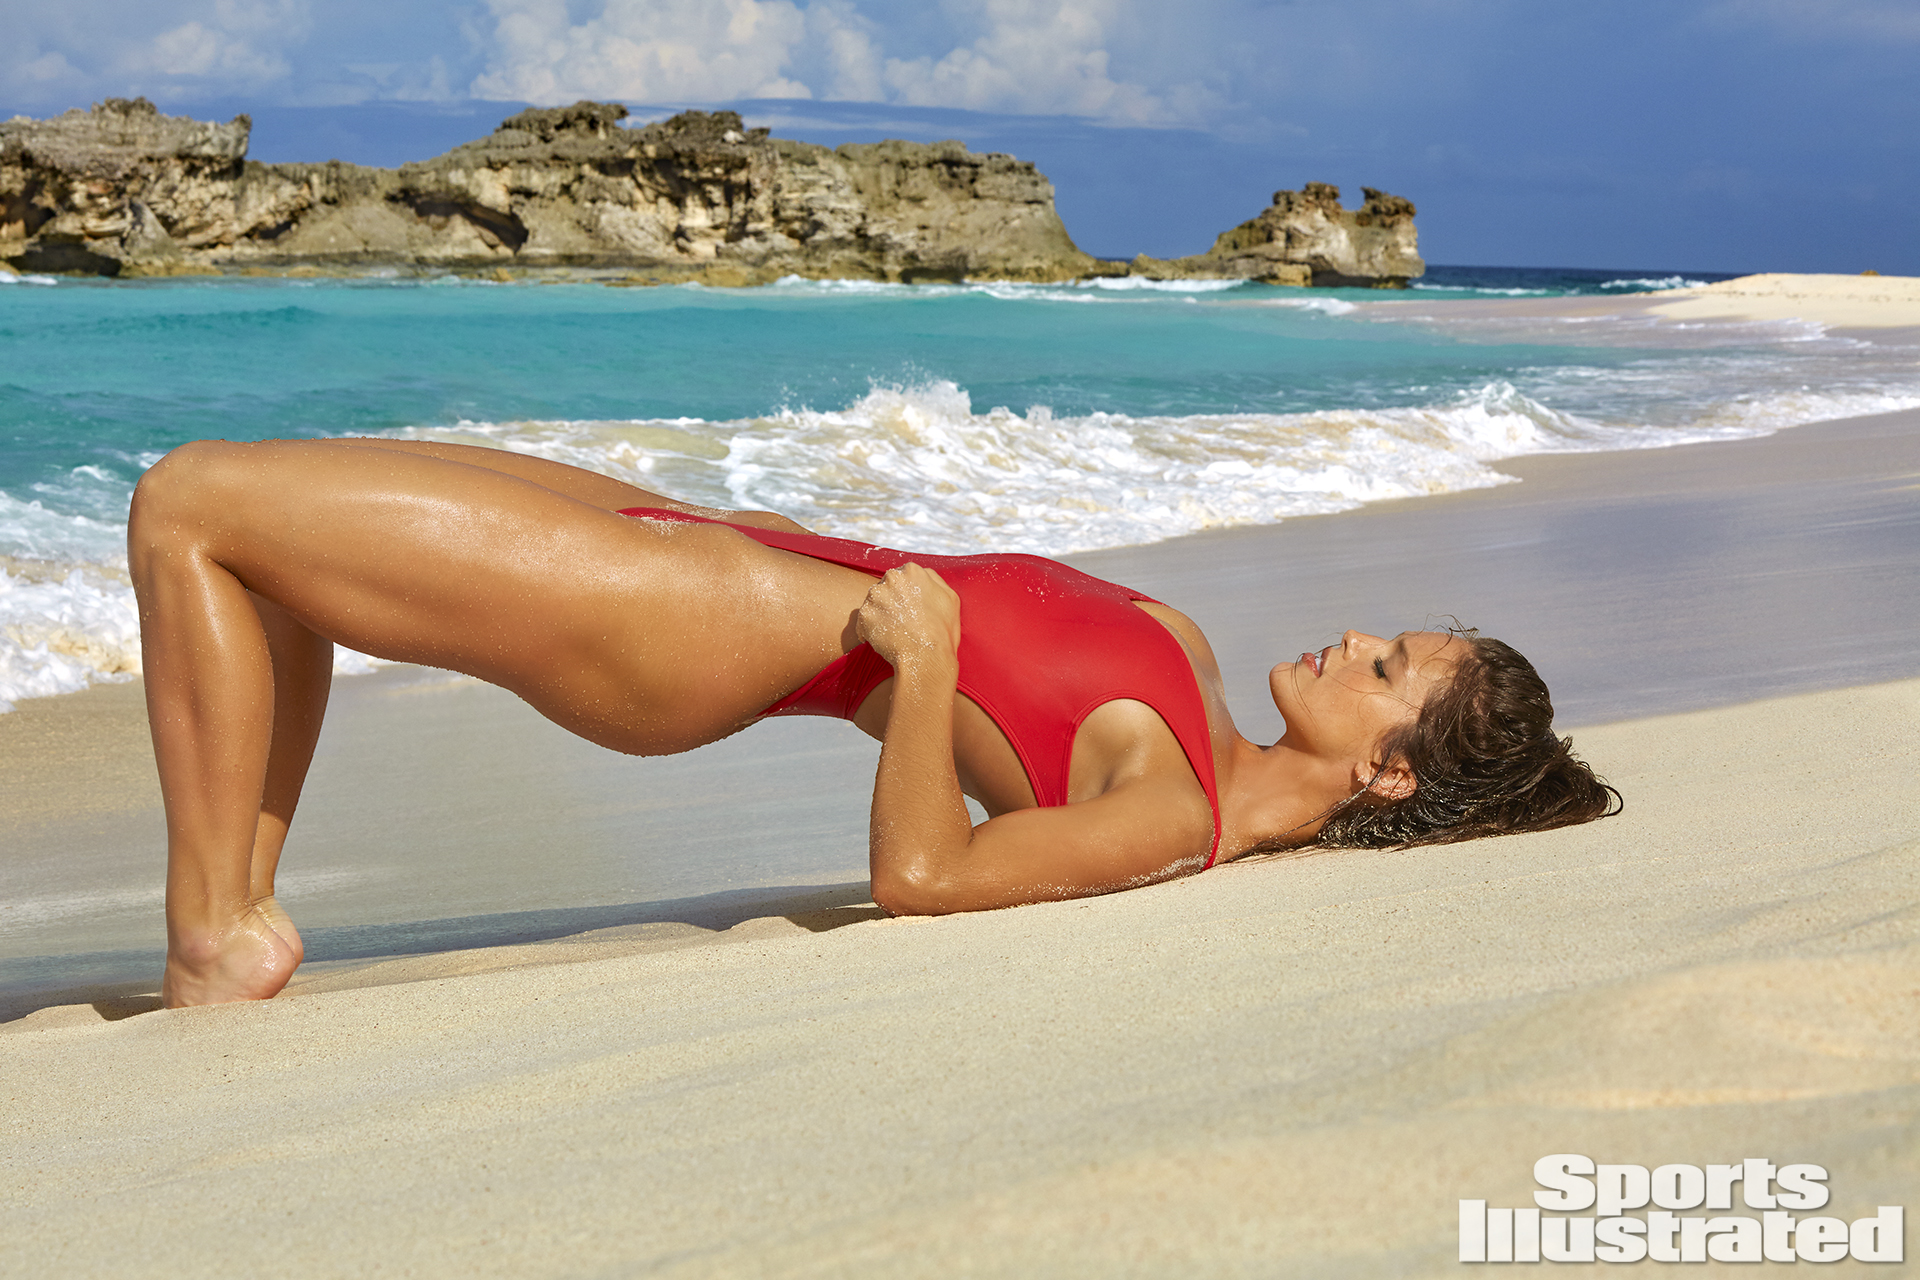 Emily DiDonato was photographed by James Macari in Turks & Caicos. Swimsuit by Kovey.